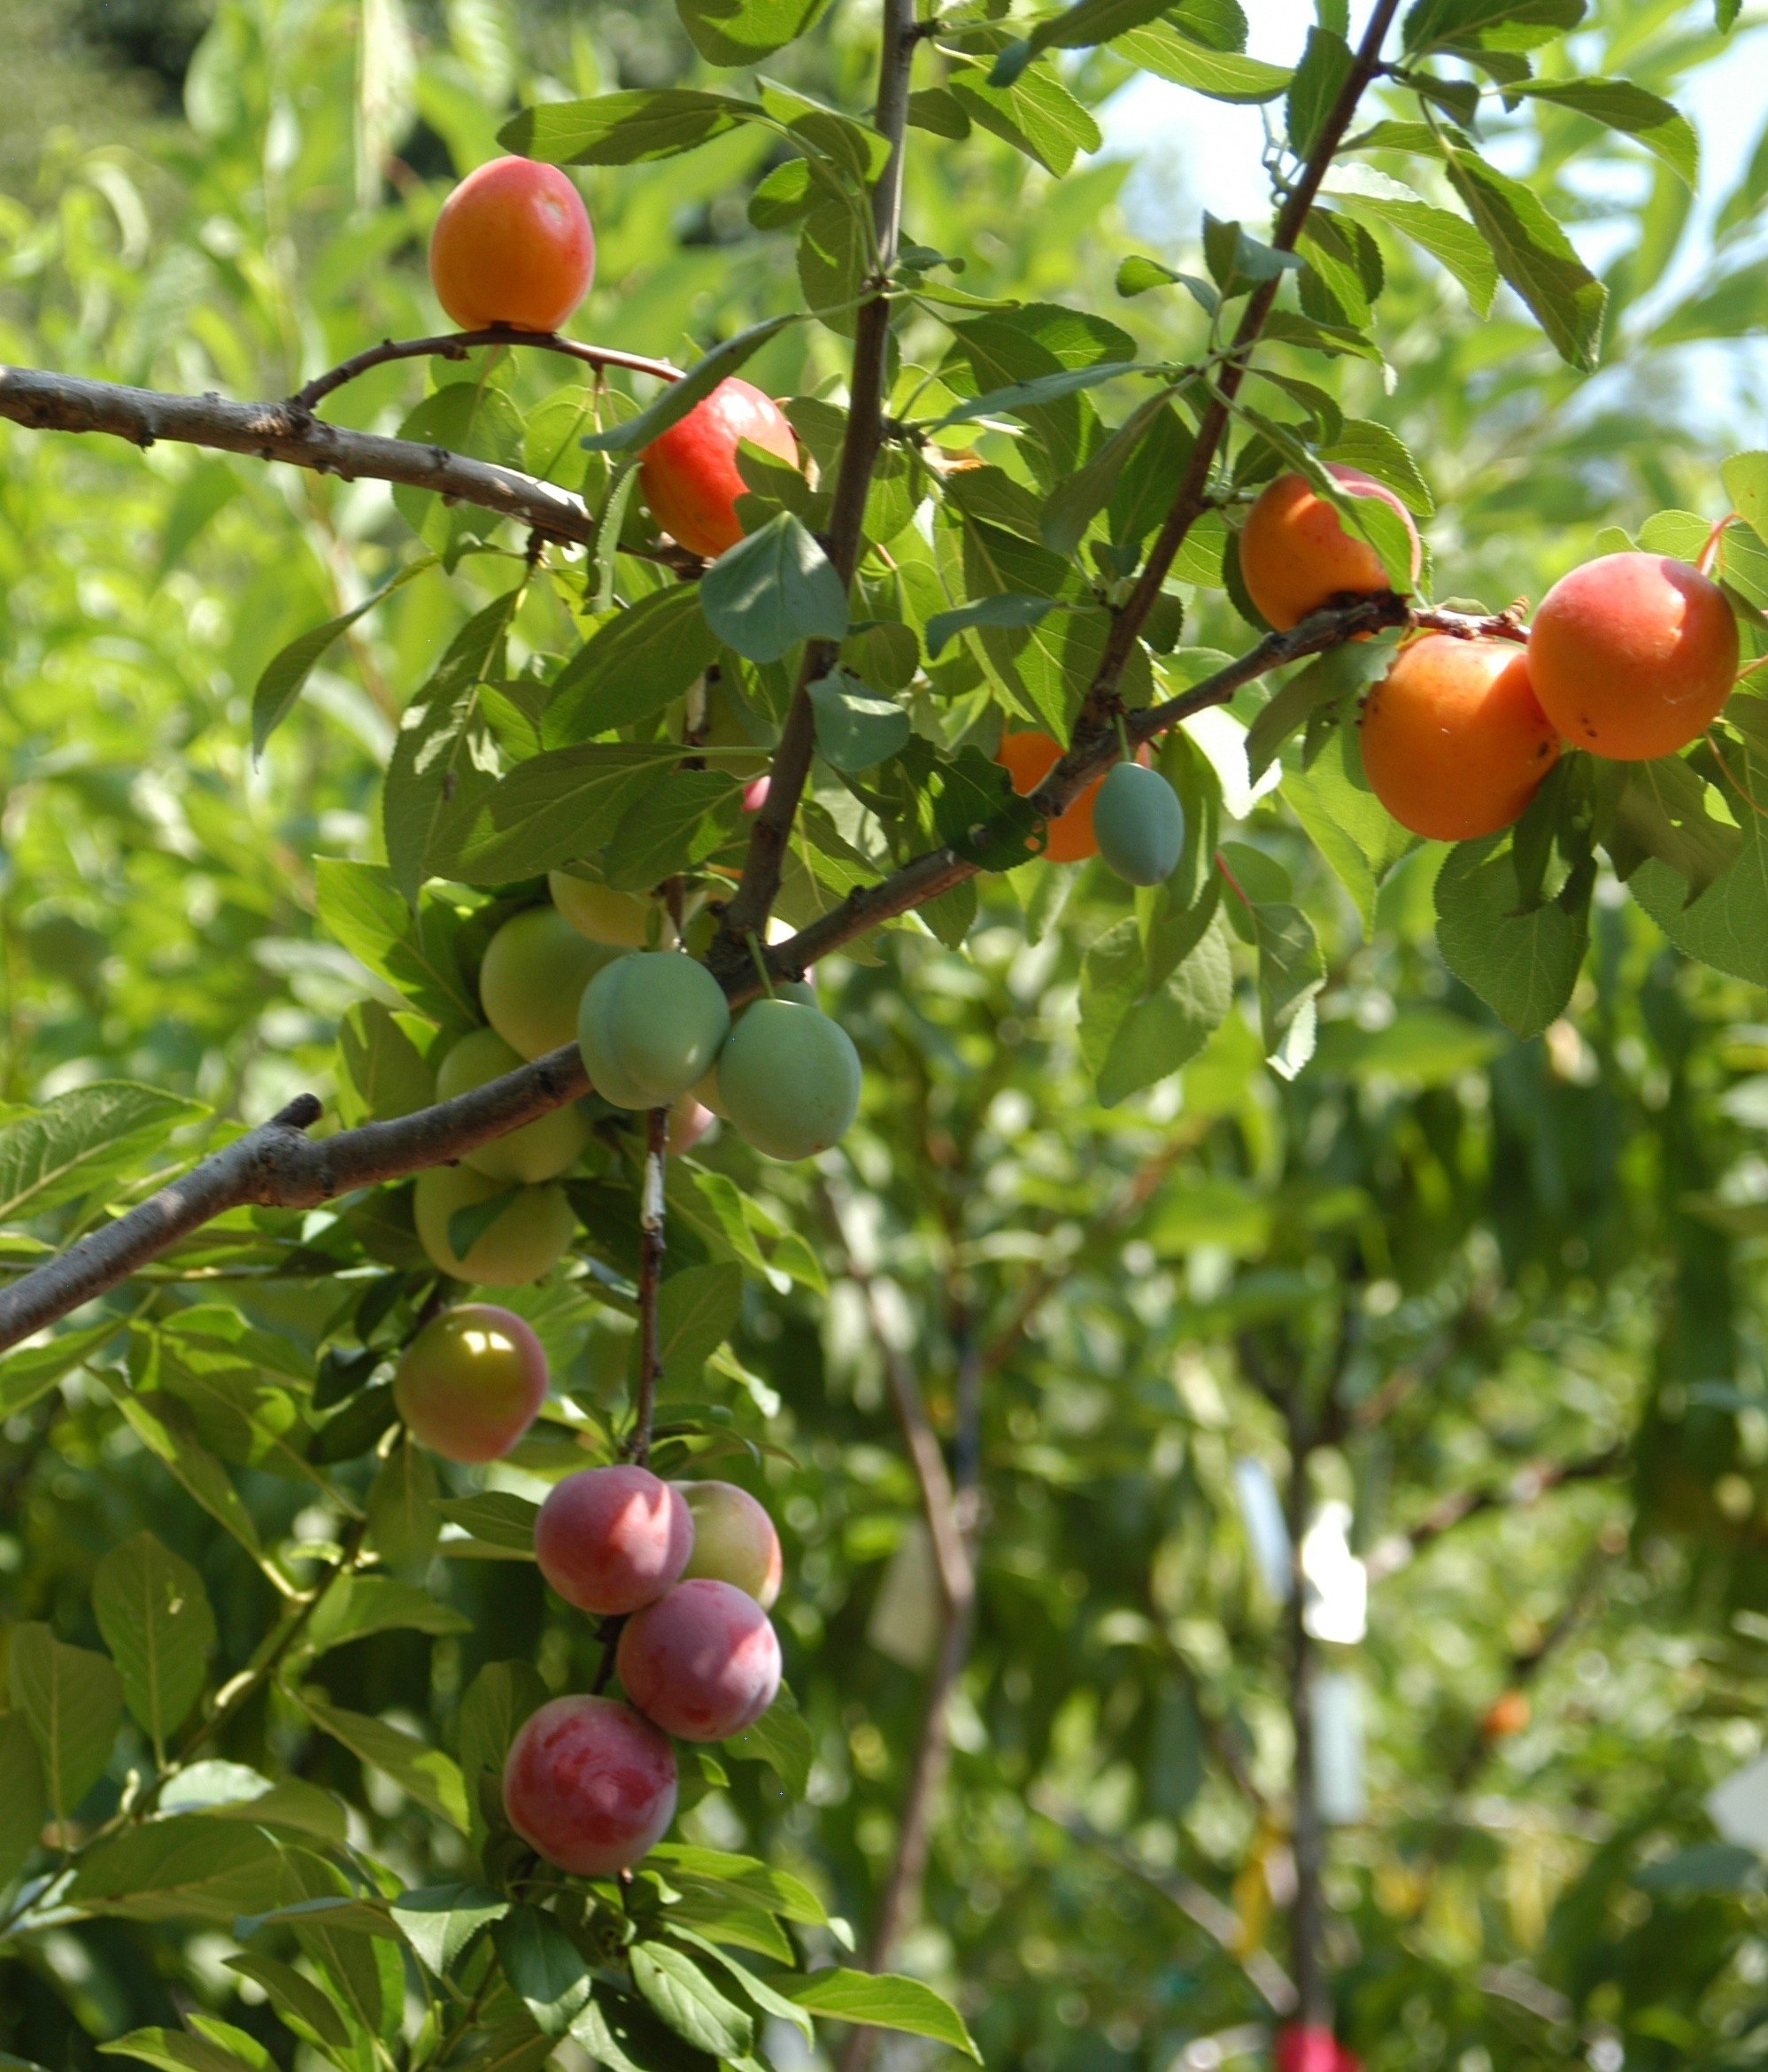 The gift of graft new york artist 39 s tree to grow 40 kinds of fruit the salt npr - Graft plum tree tips ...